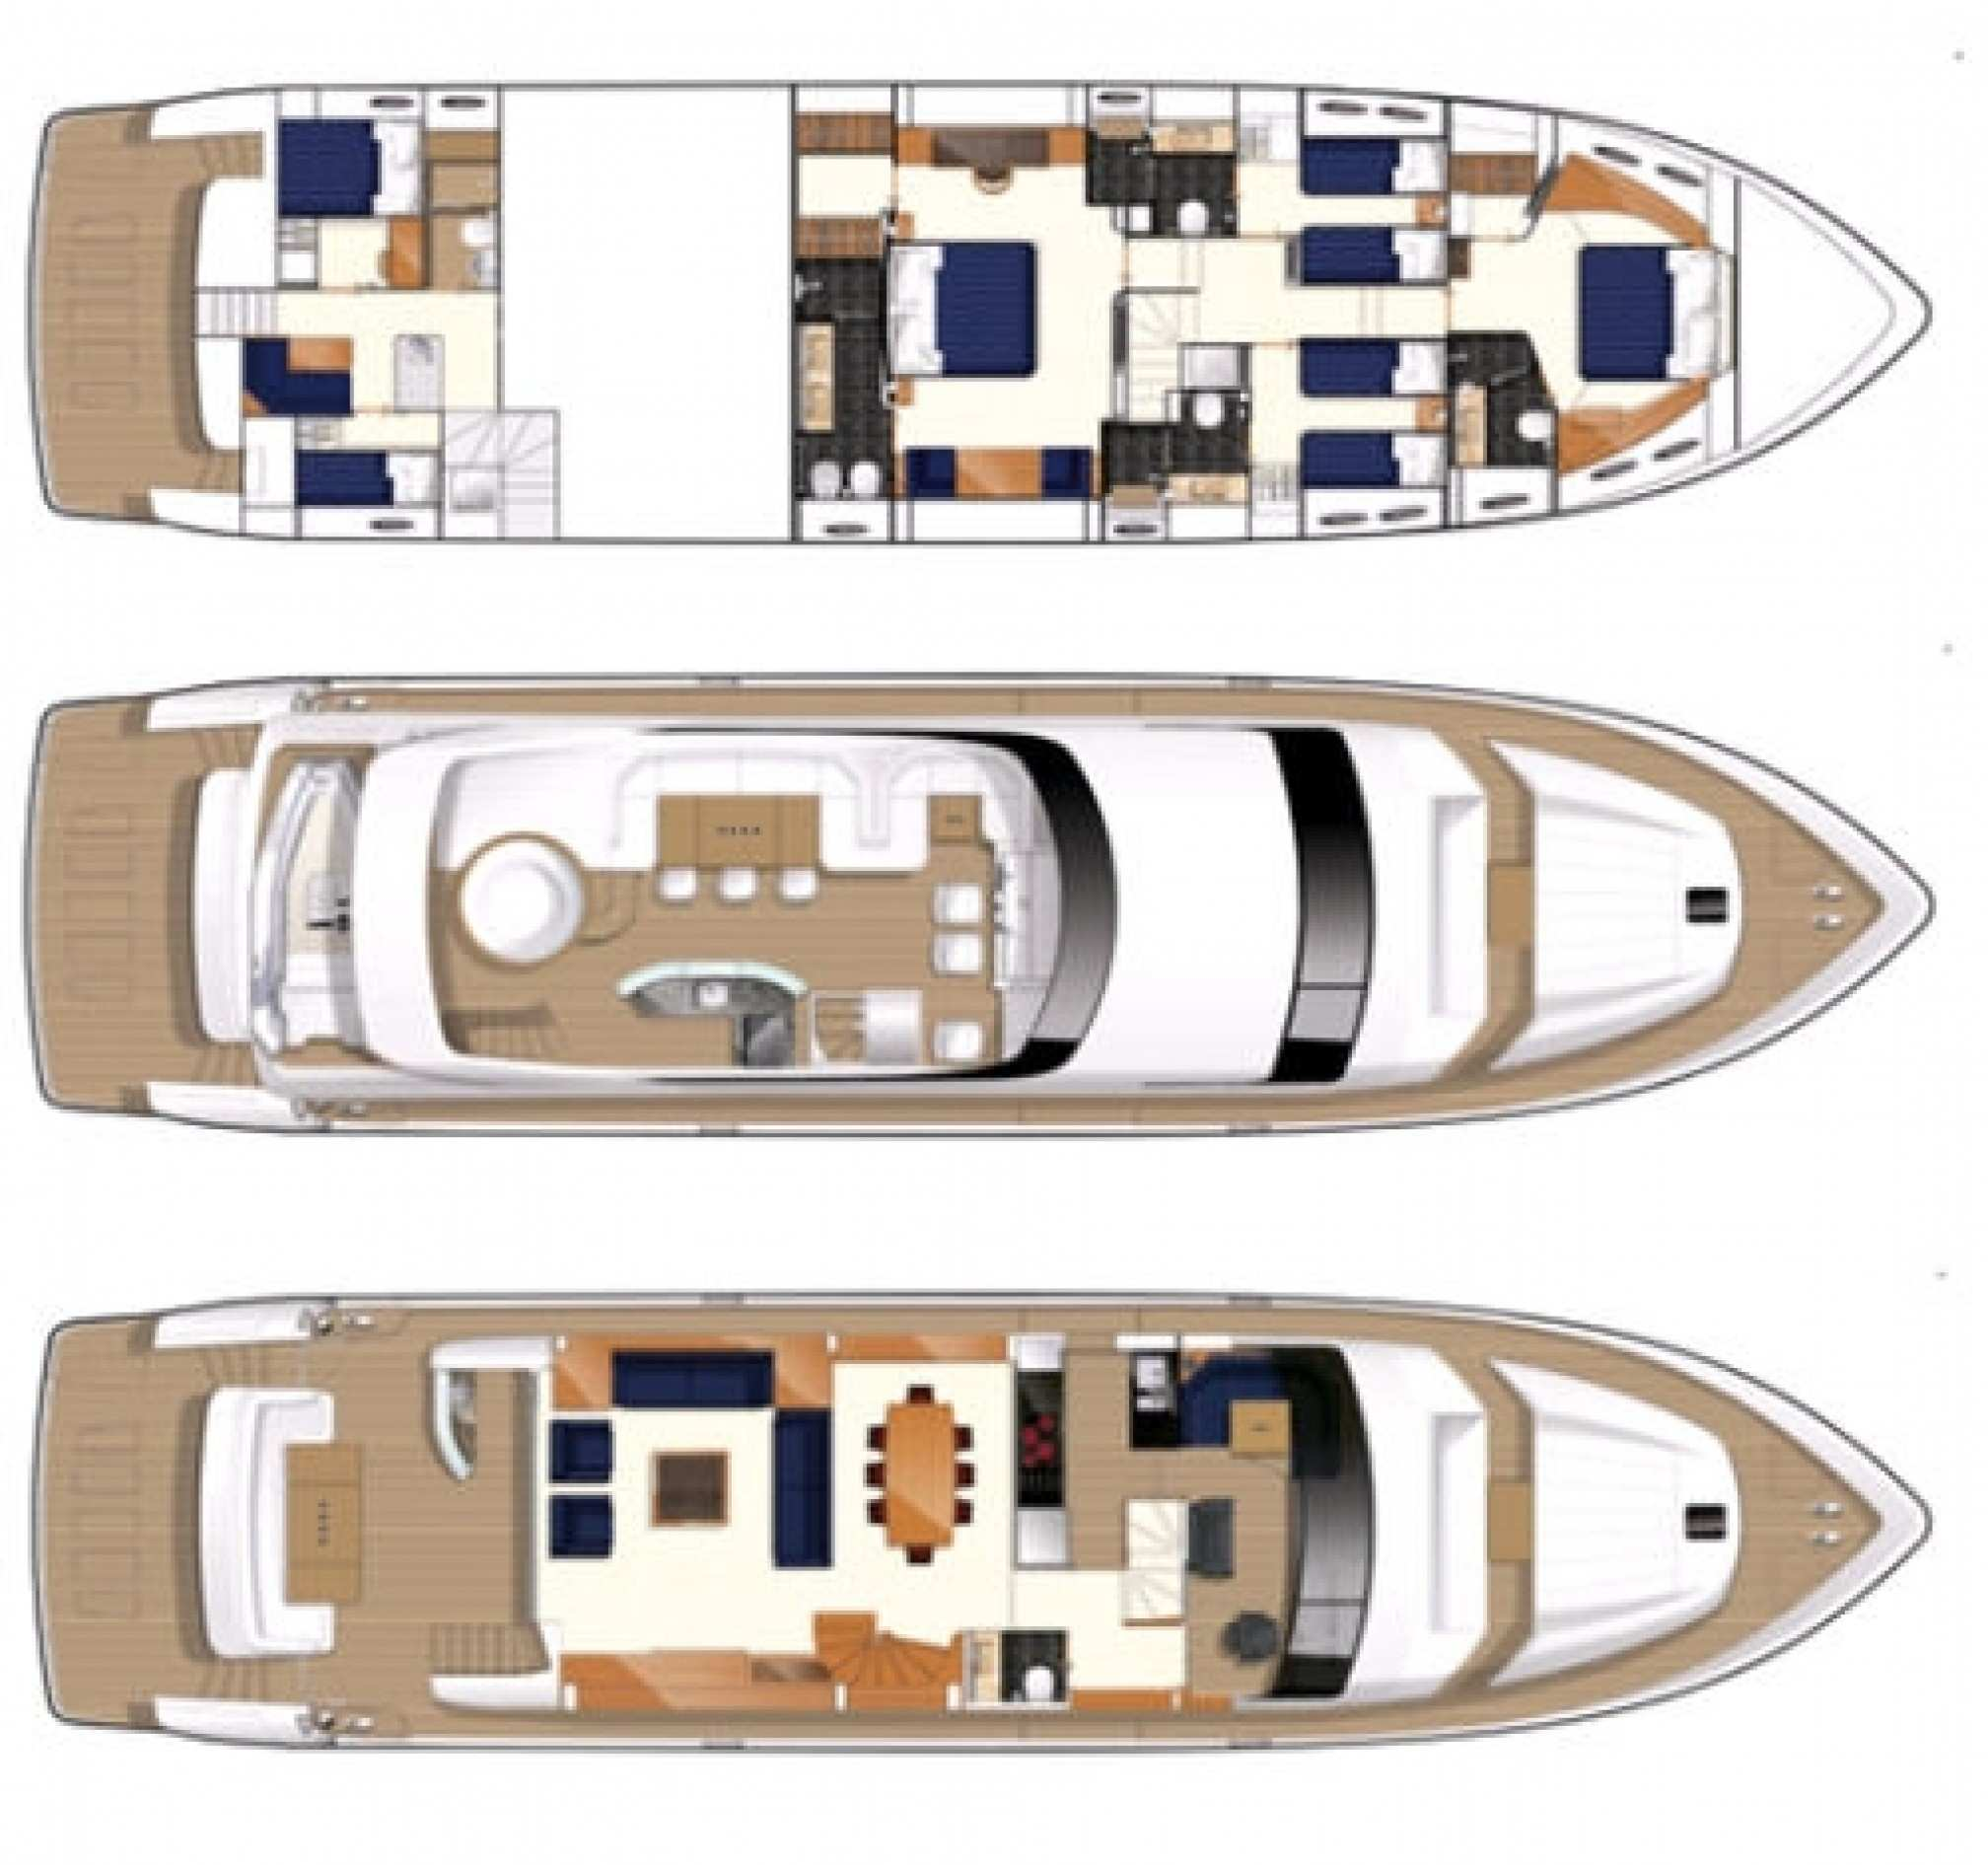 Princess 85 yacht charter layout